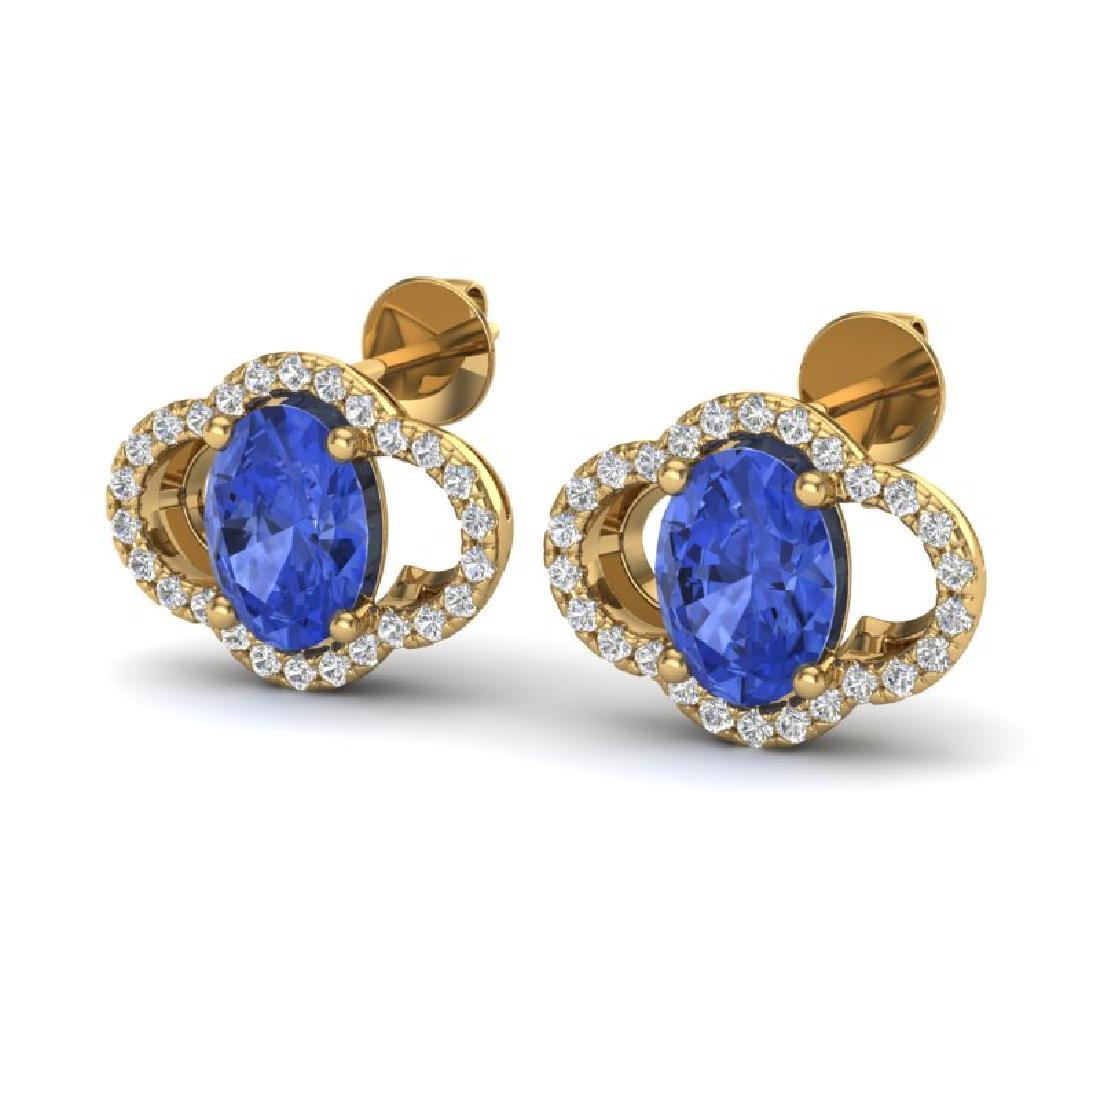 3.50 CTW Tanzanite & Micro Pave VS/SI Diamond Earrings